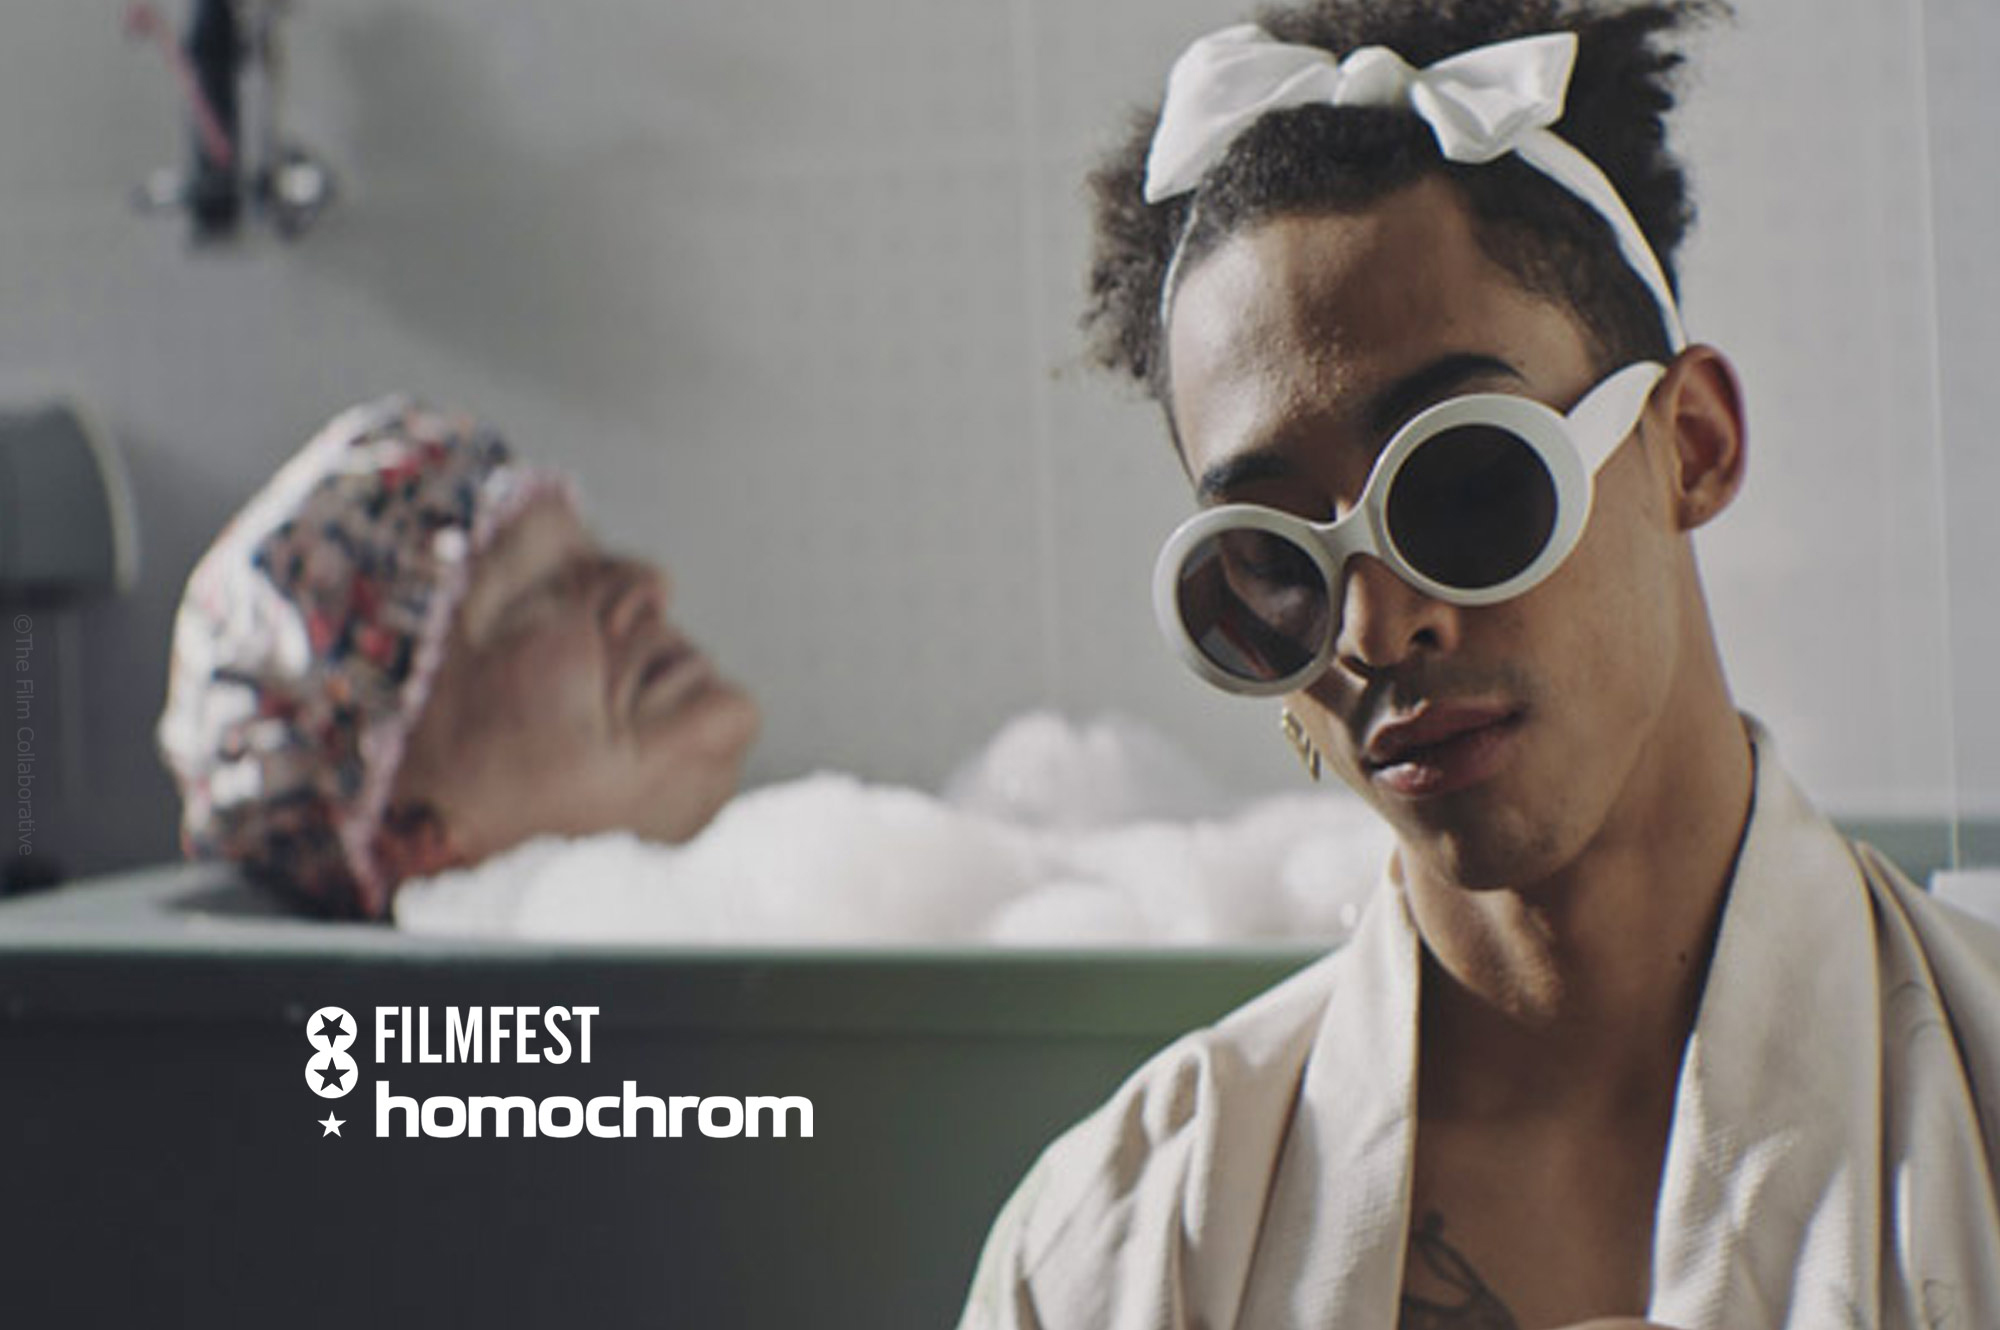 Top Queer Films 2018 Filmfest homochrom © Tucked